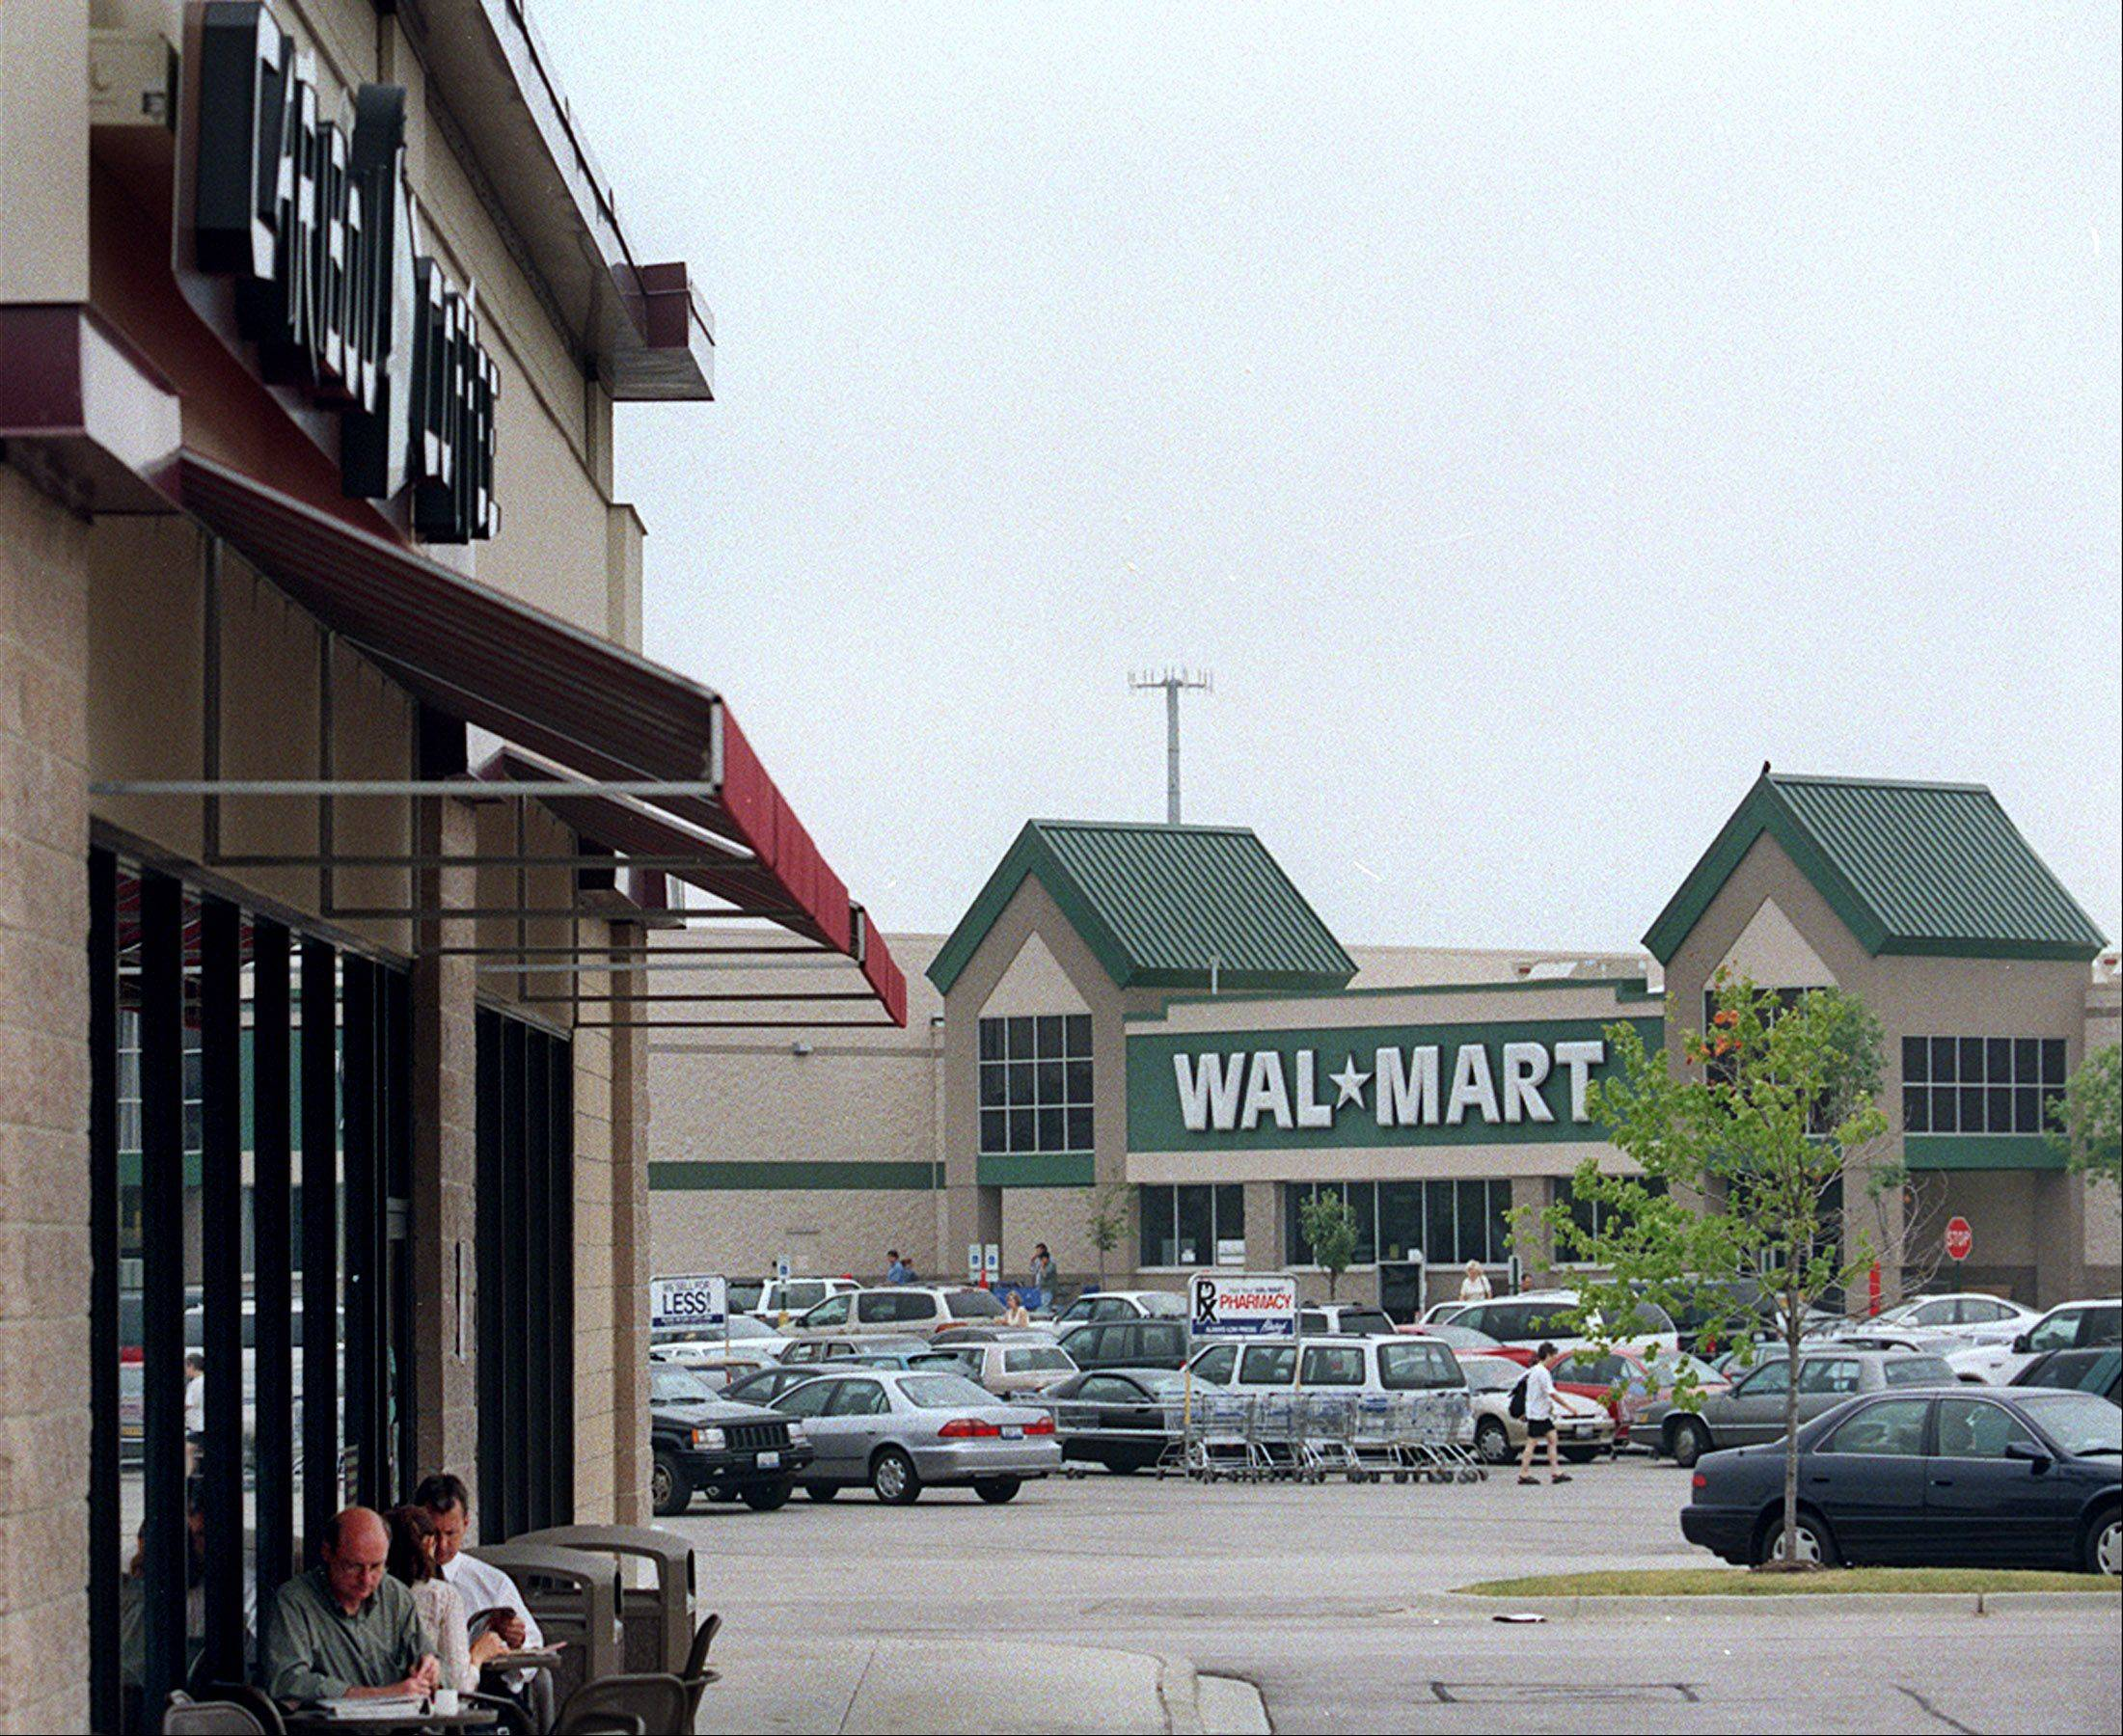 Wal-Mart Stores Inc., the world's largest retailer and the nation's largest private employer, is making a pledge to hire every veteran who wants a job.